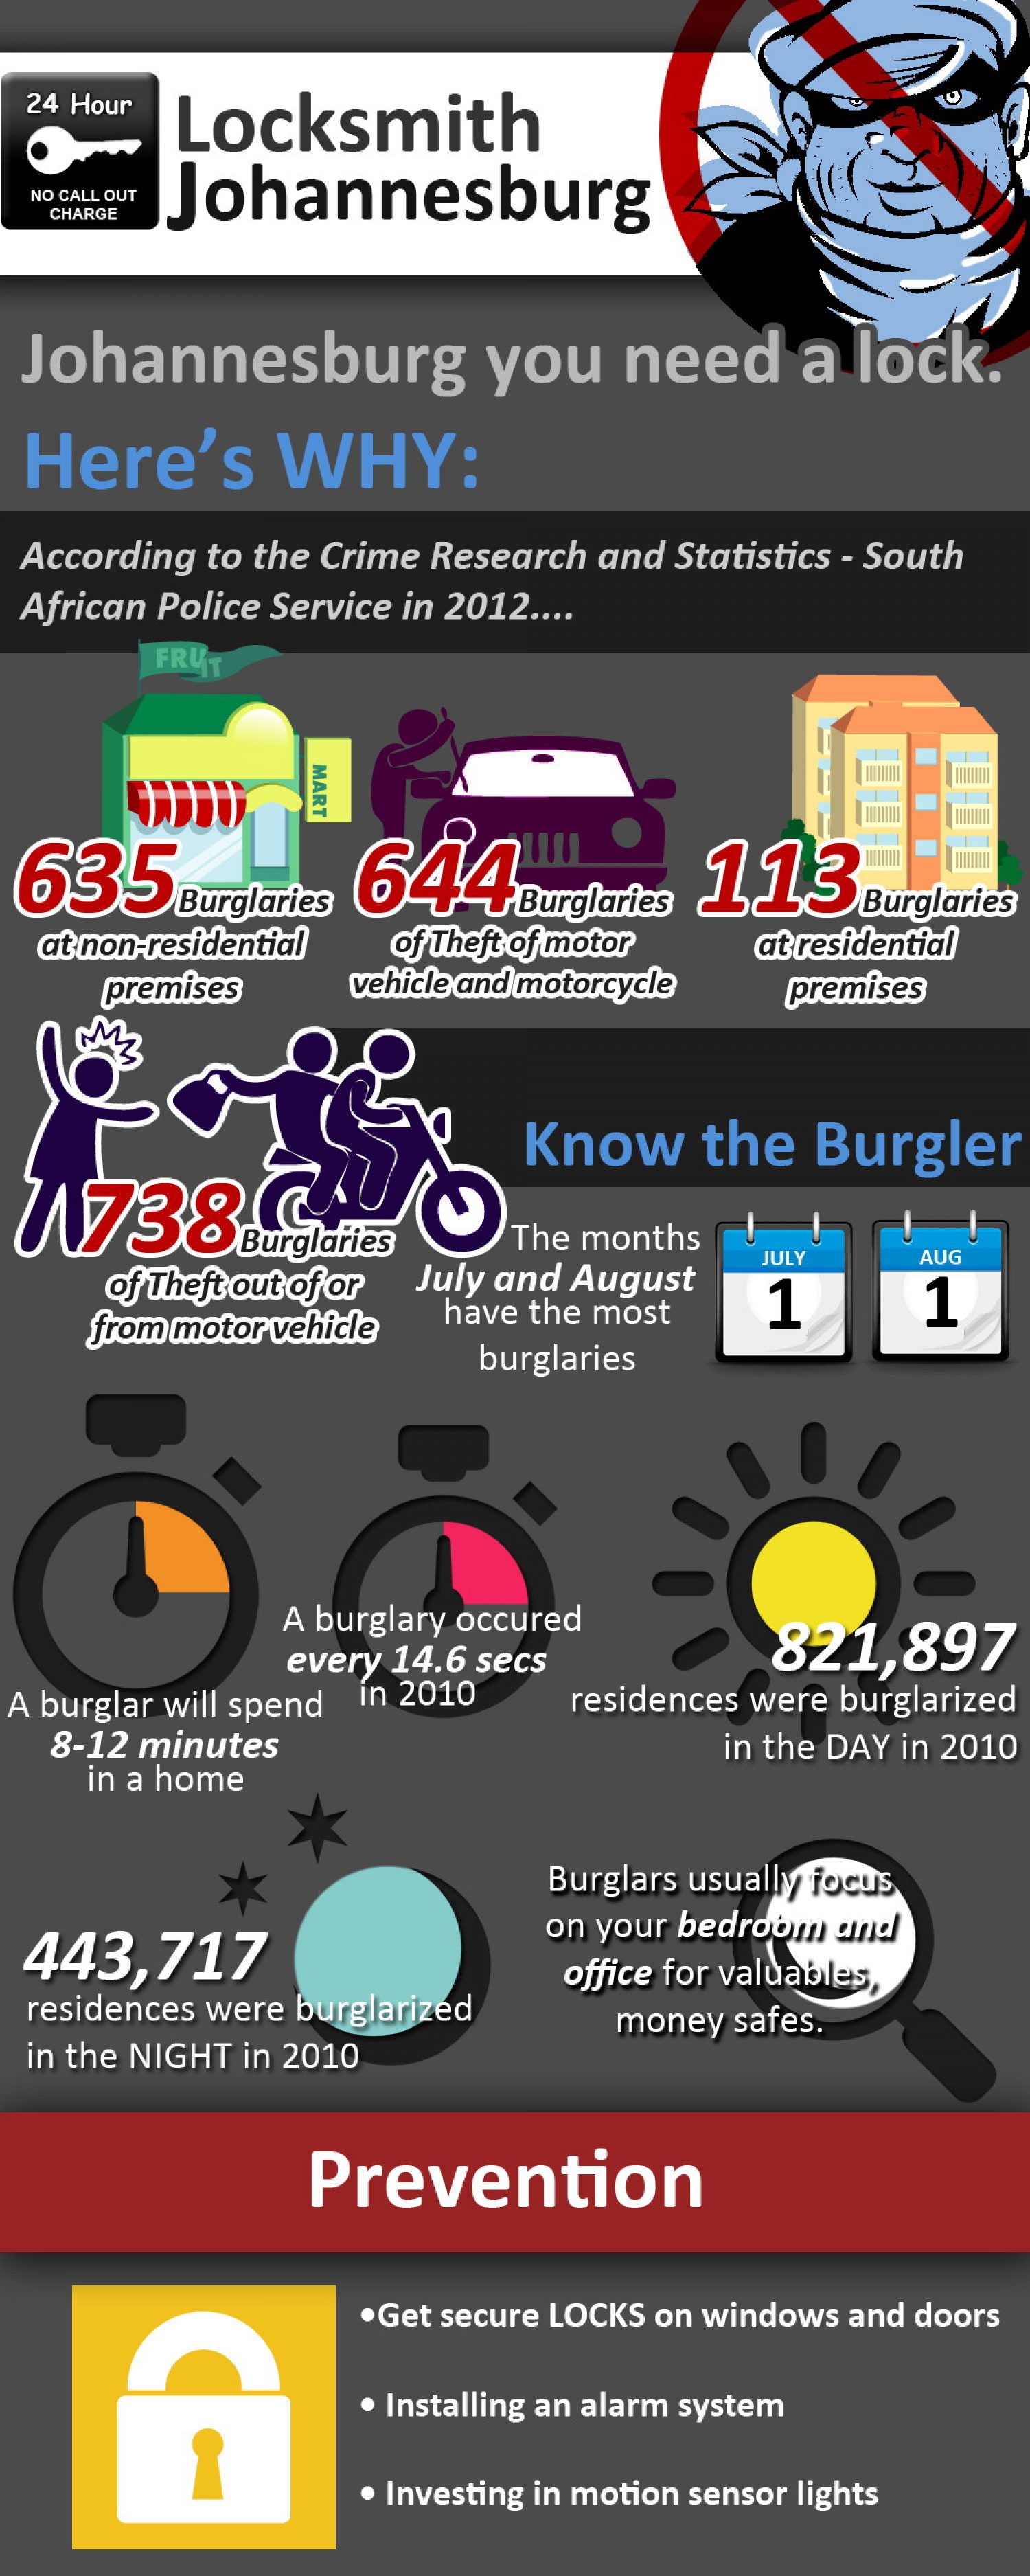 Johannesburg - Crime Capital of the World - Break in Statistics & Prevention Infographic